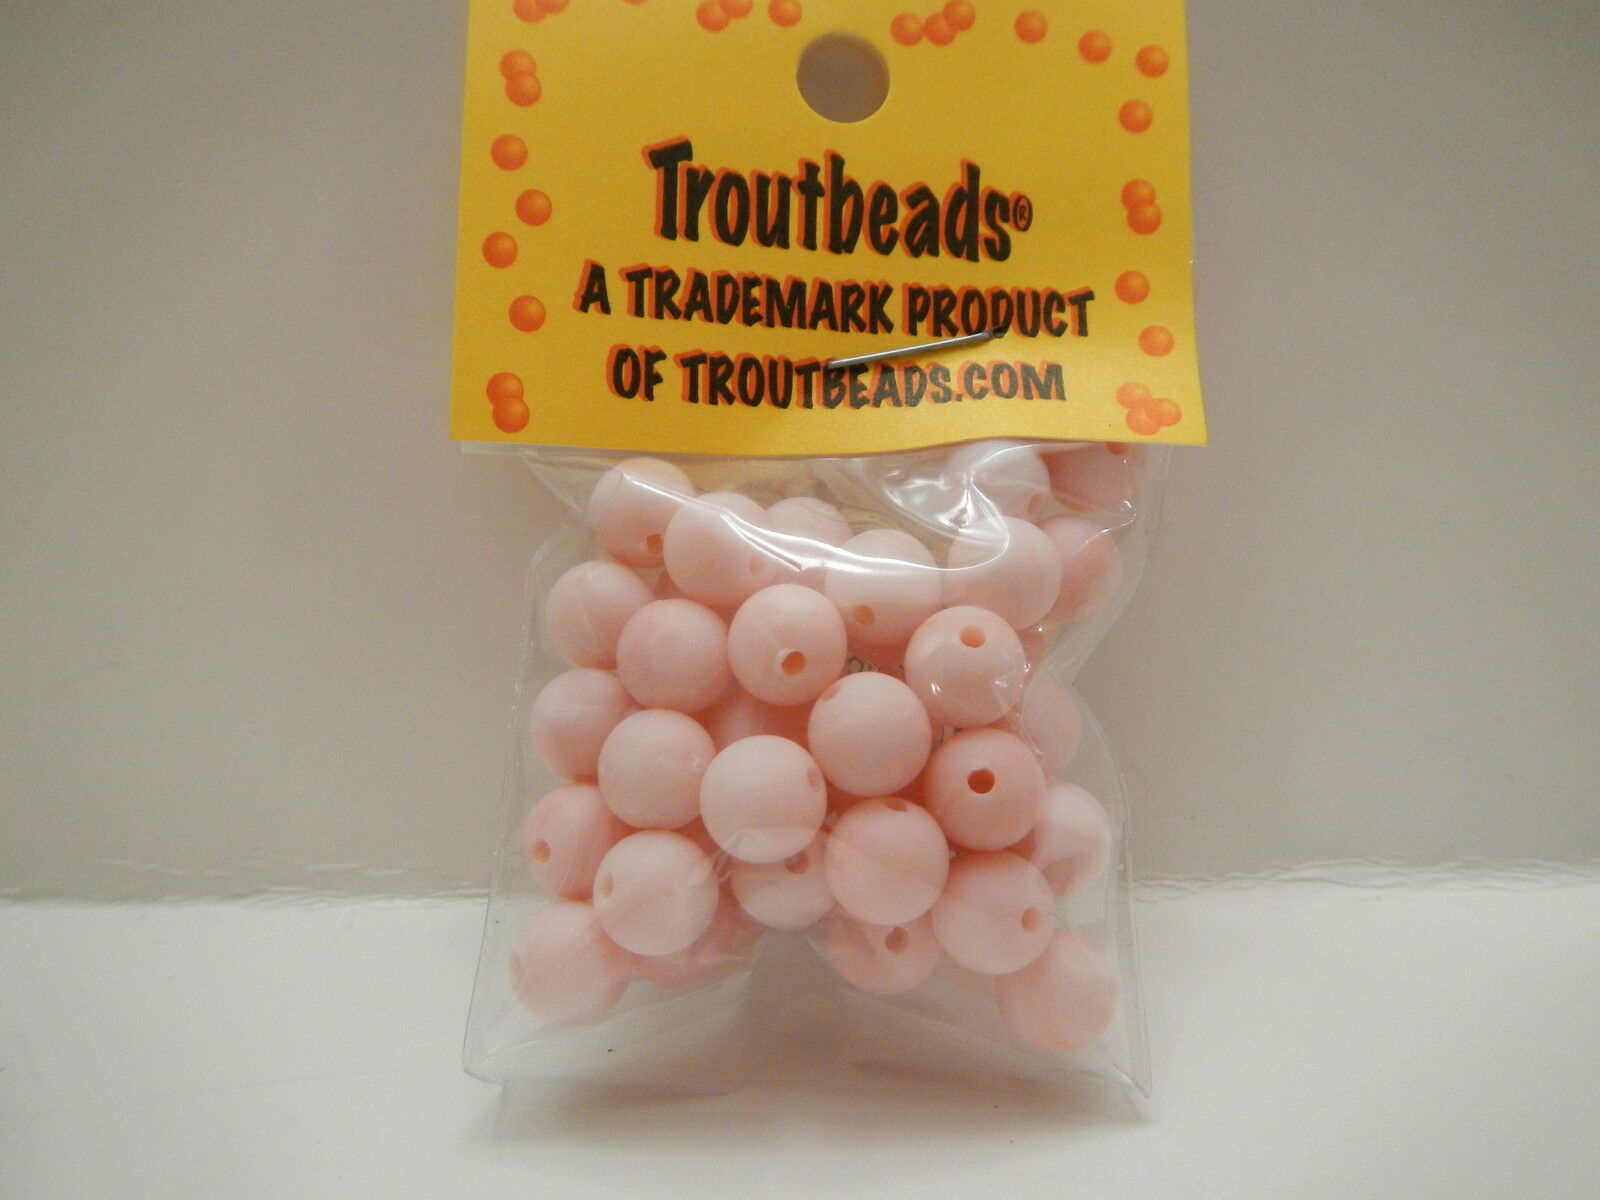 Troutbeads Mottlebeads Cotton Candy  6-10mm Trout Bead $2.50 US Combined Ship